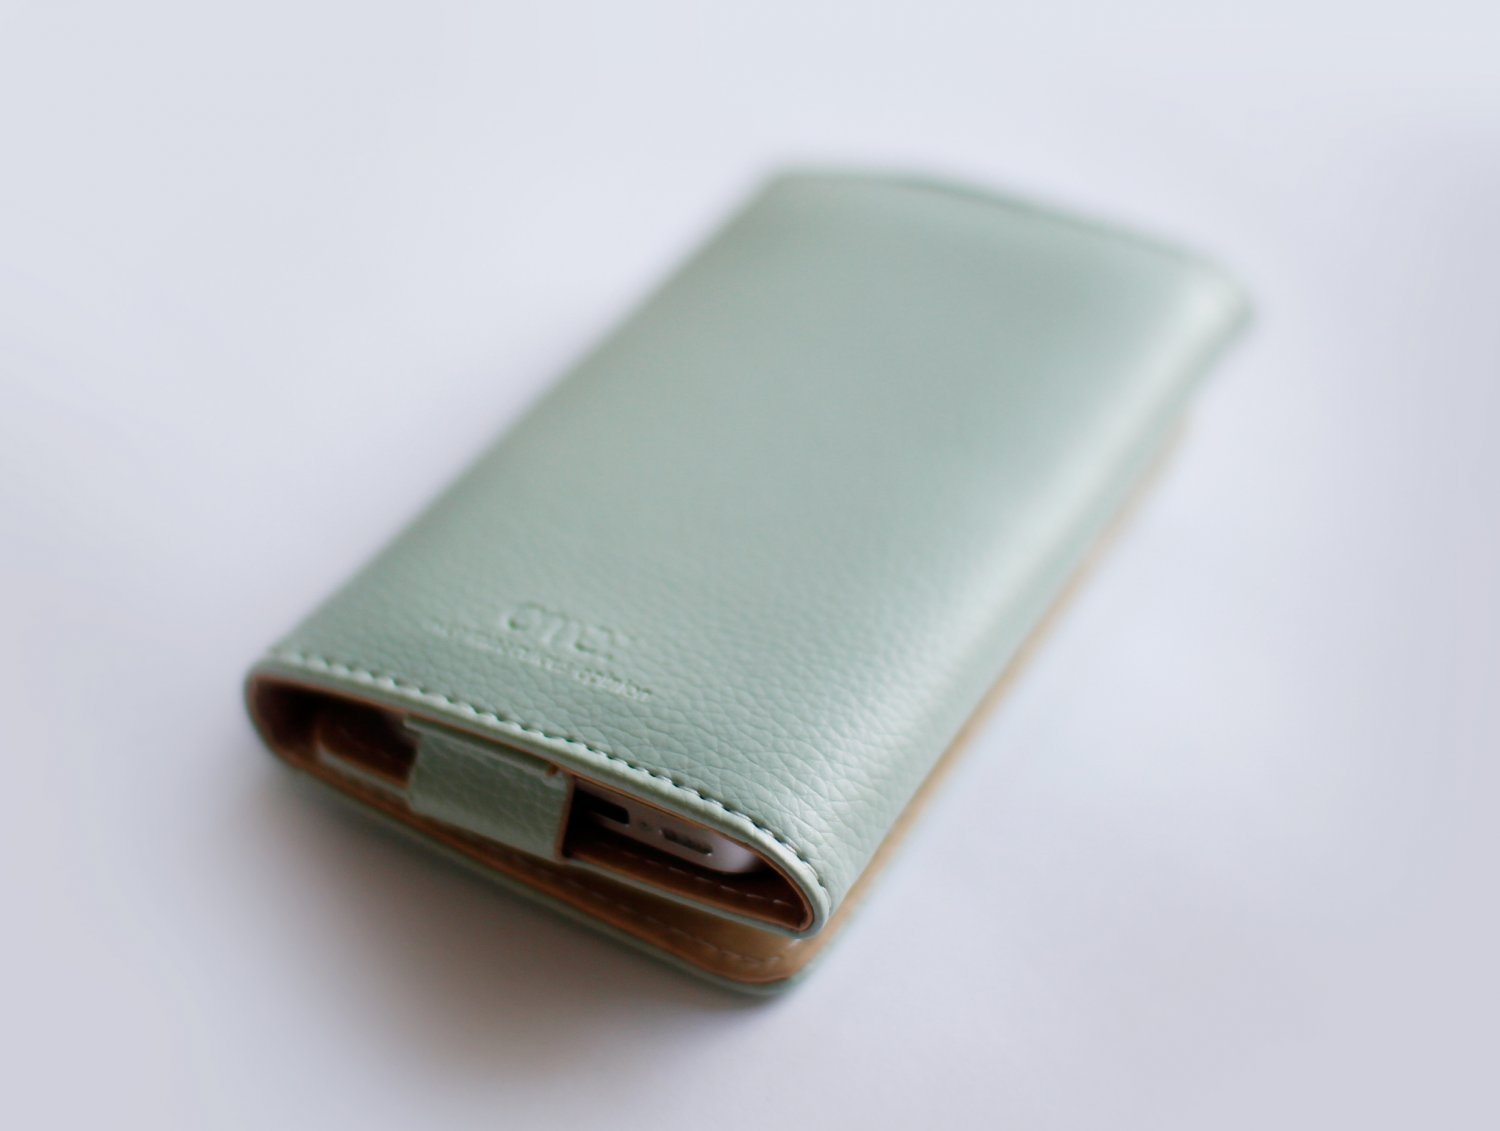 iPhone Leather Wallet - Dusty Shale